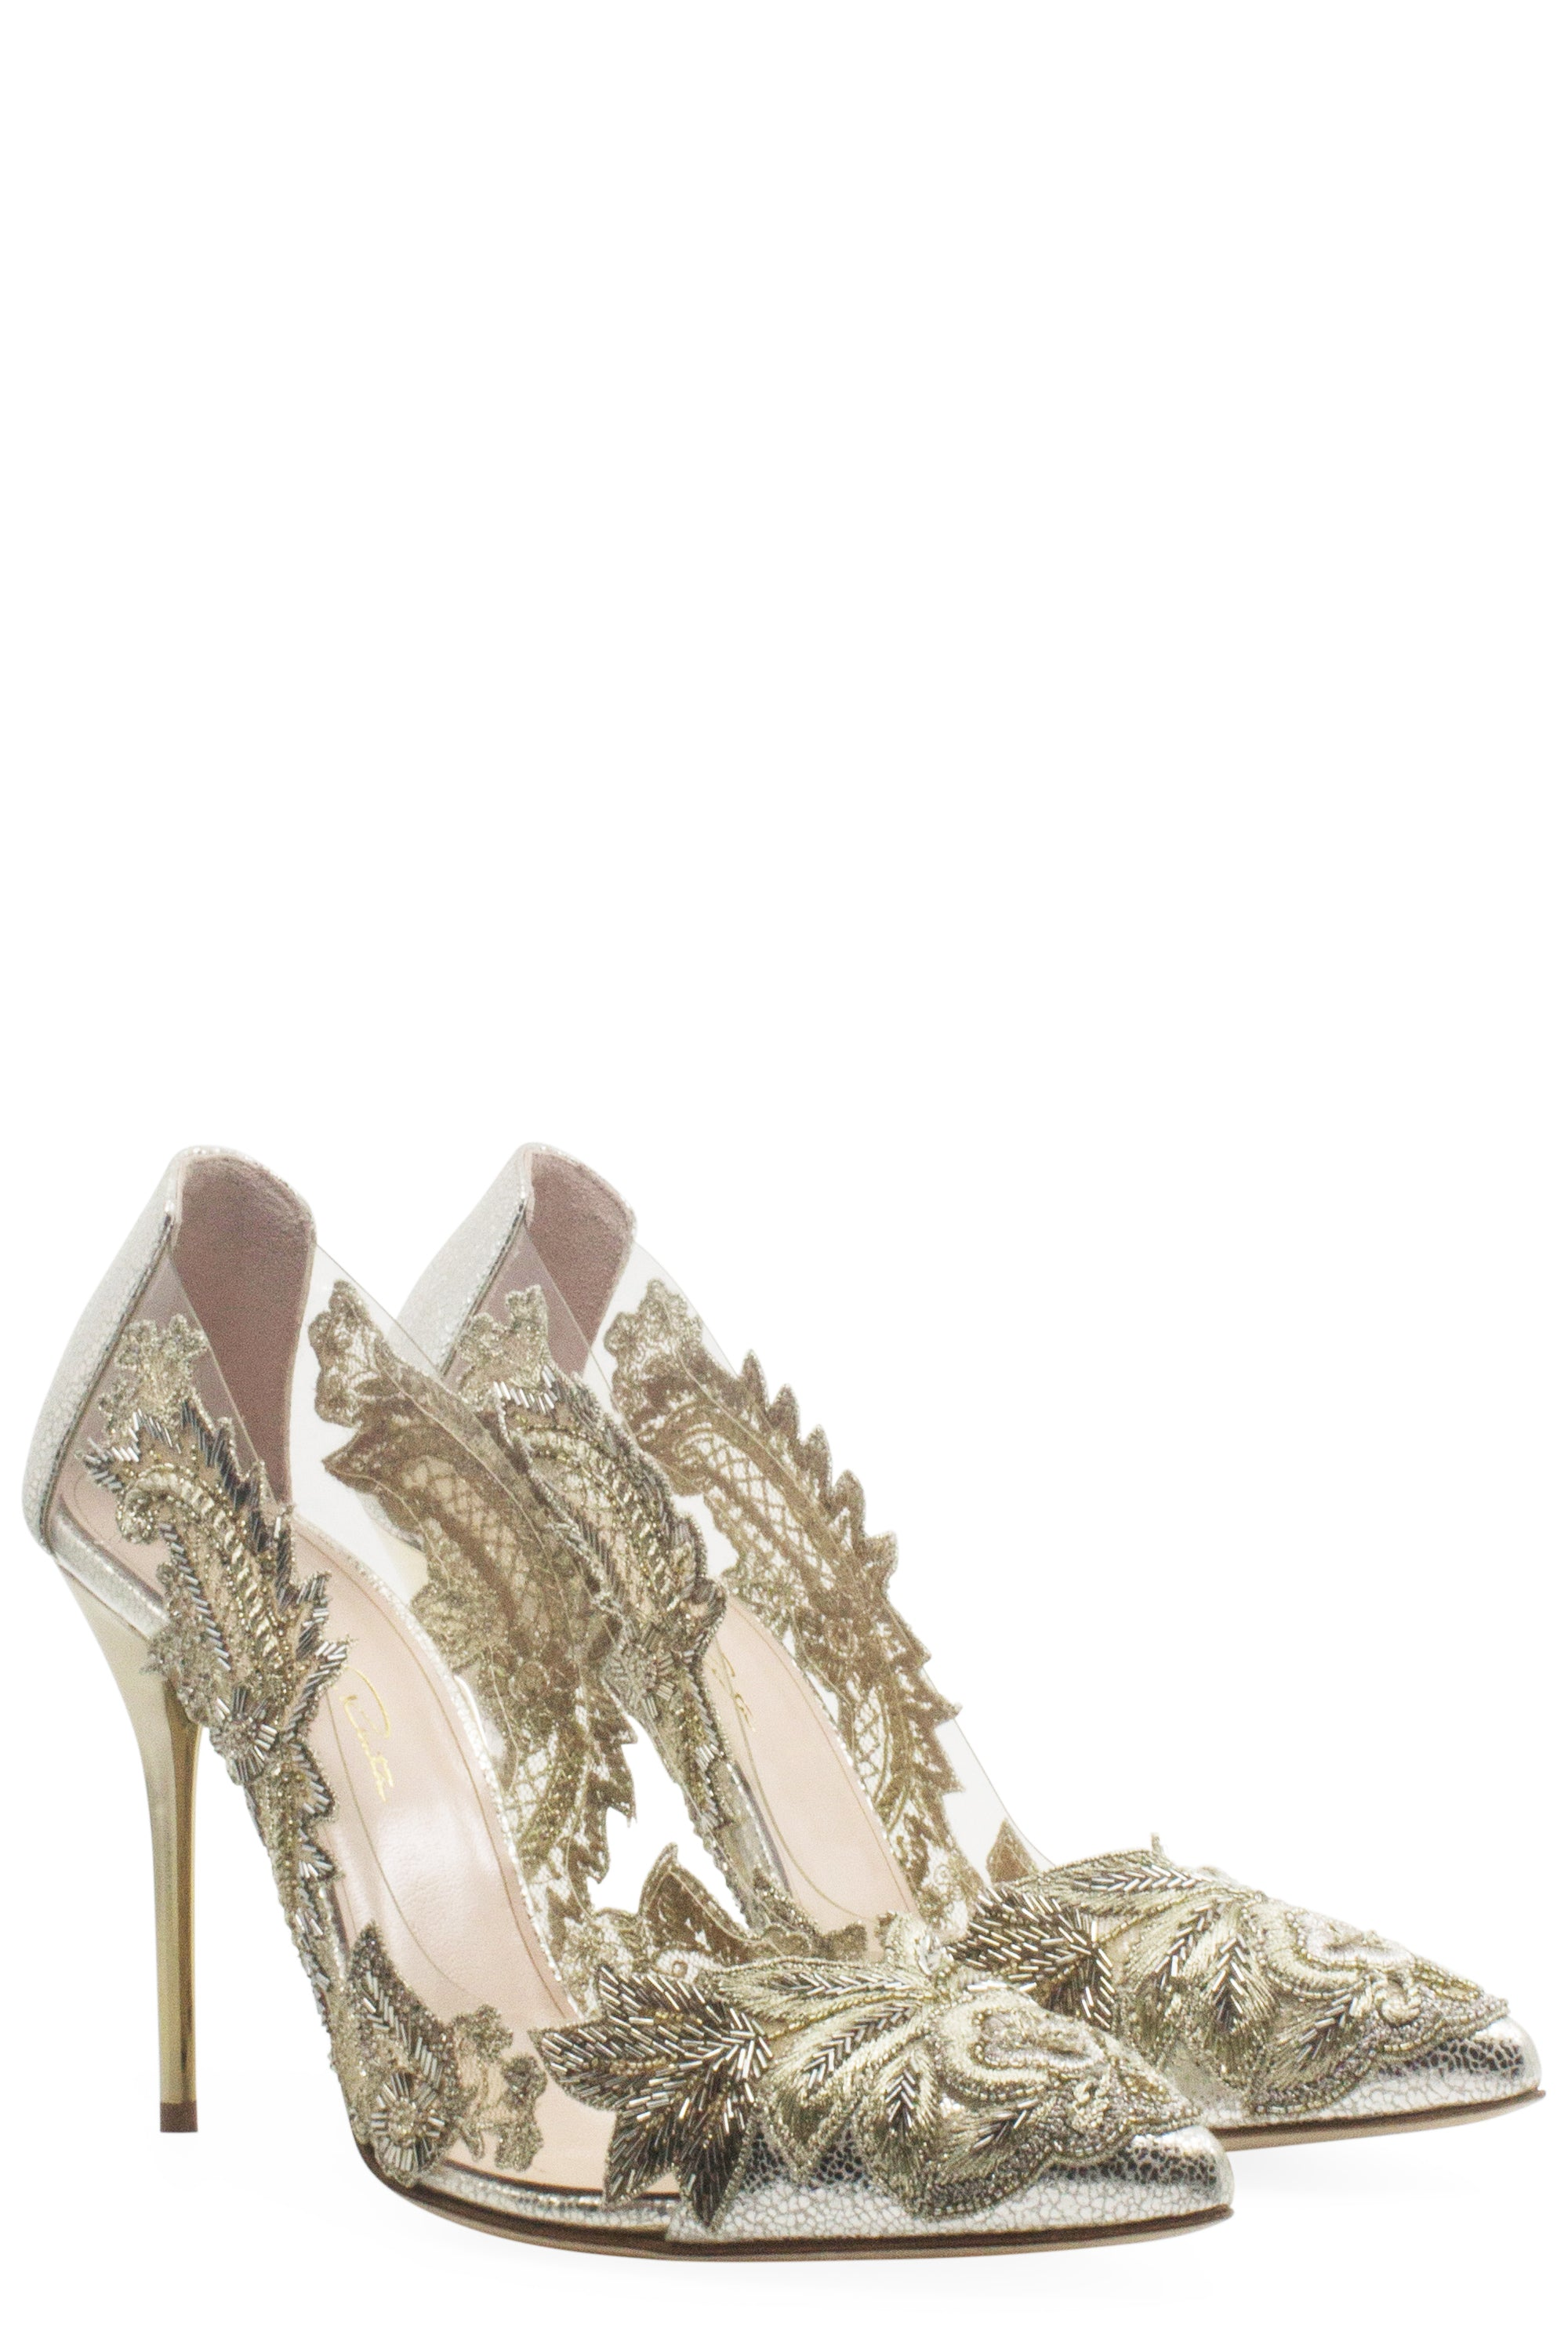 Oscar de la Renta Alyssa Embellished Transparent Pumps